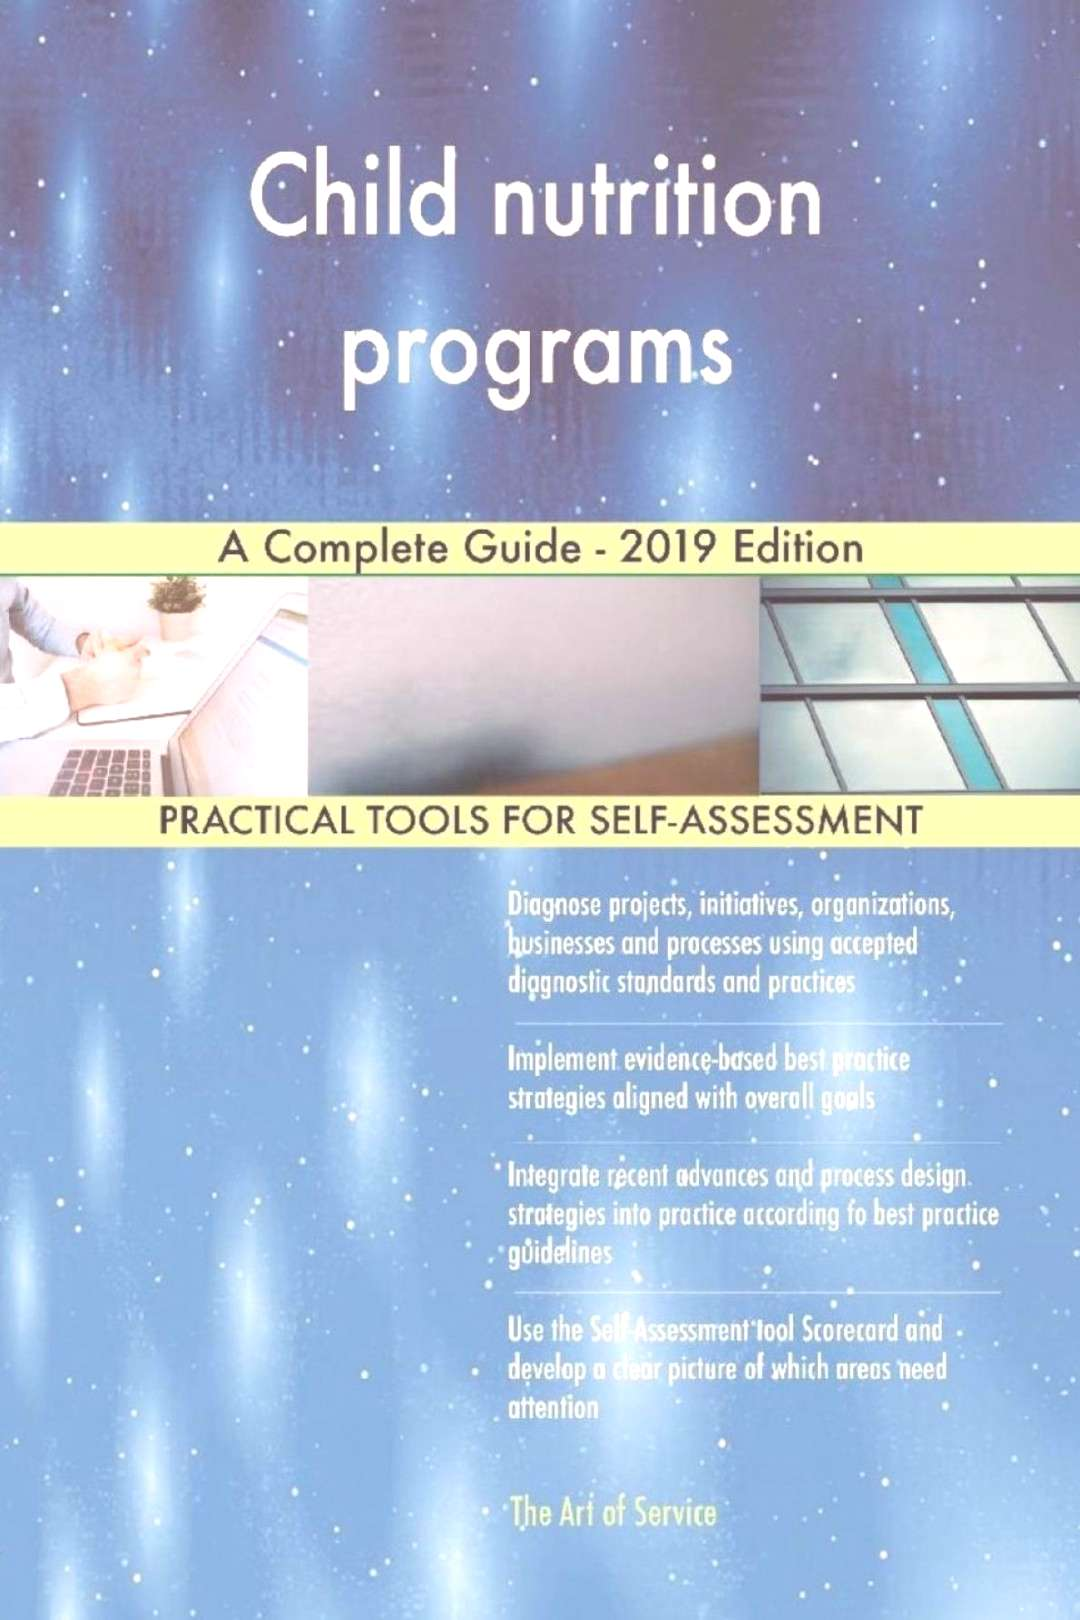 Child nutrition programs A Complete Guide - 2019 Edition (eBook) Child nutrition... - Child nutrit